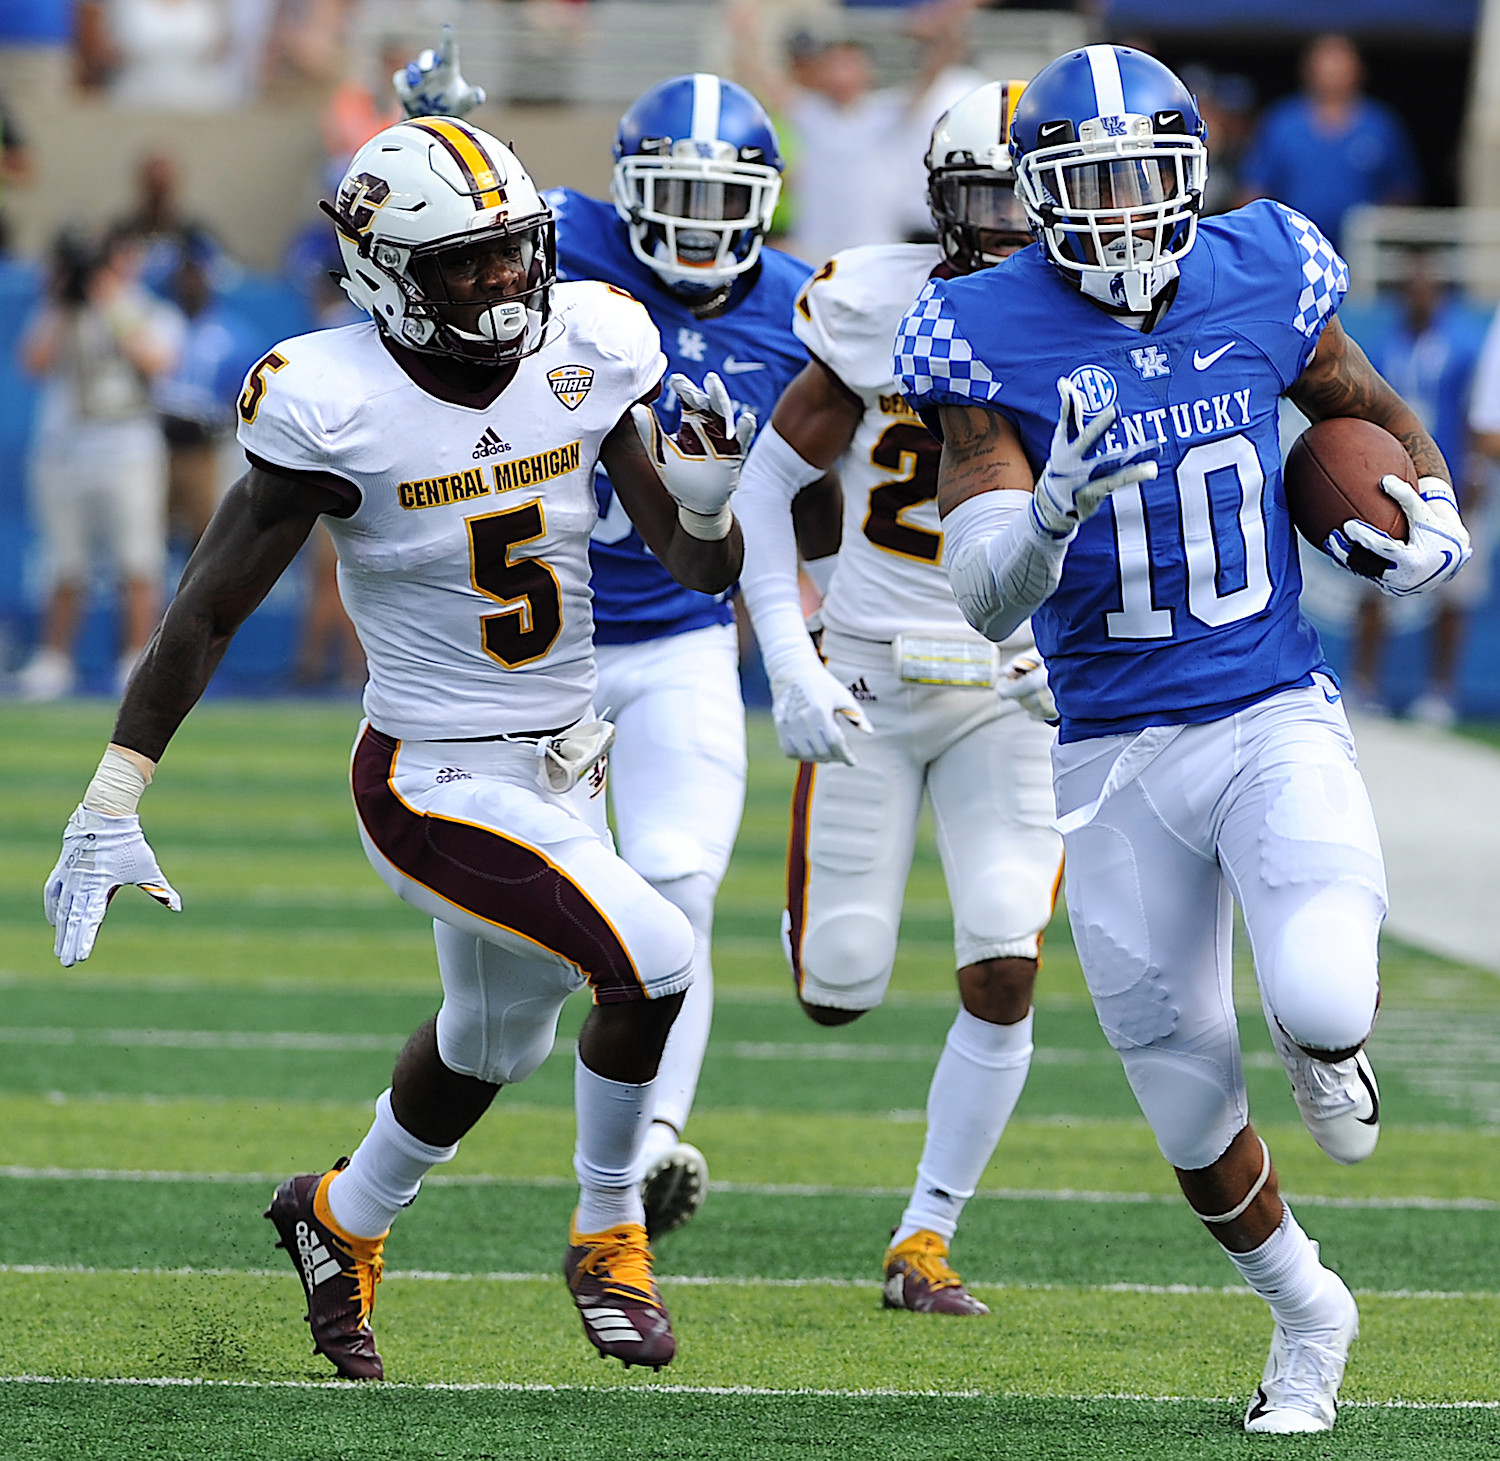 A.J. Rose rushed for 104 yards and two touchdowns in Kentucky's 35-20 win over Central Michigan last year at Kroger Field. Rose is one of the top candidates to replace Benny Snell in the backfield. (Kentucky Today/Bill Thiry)